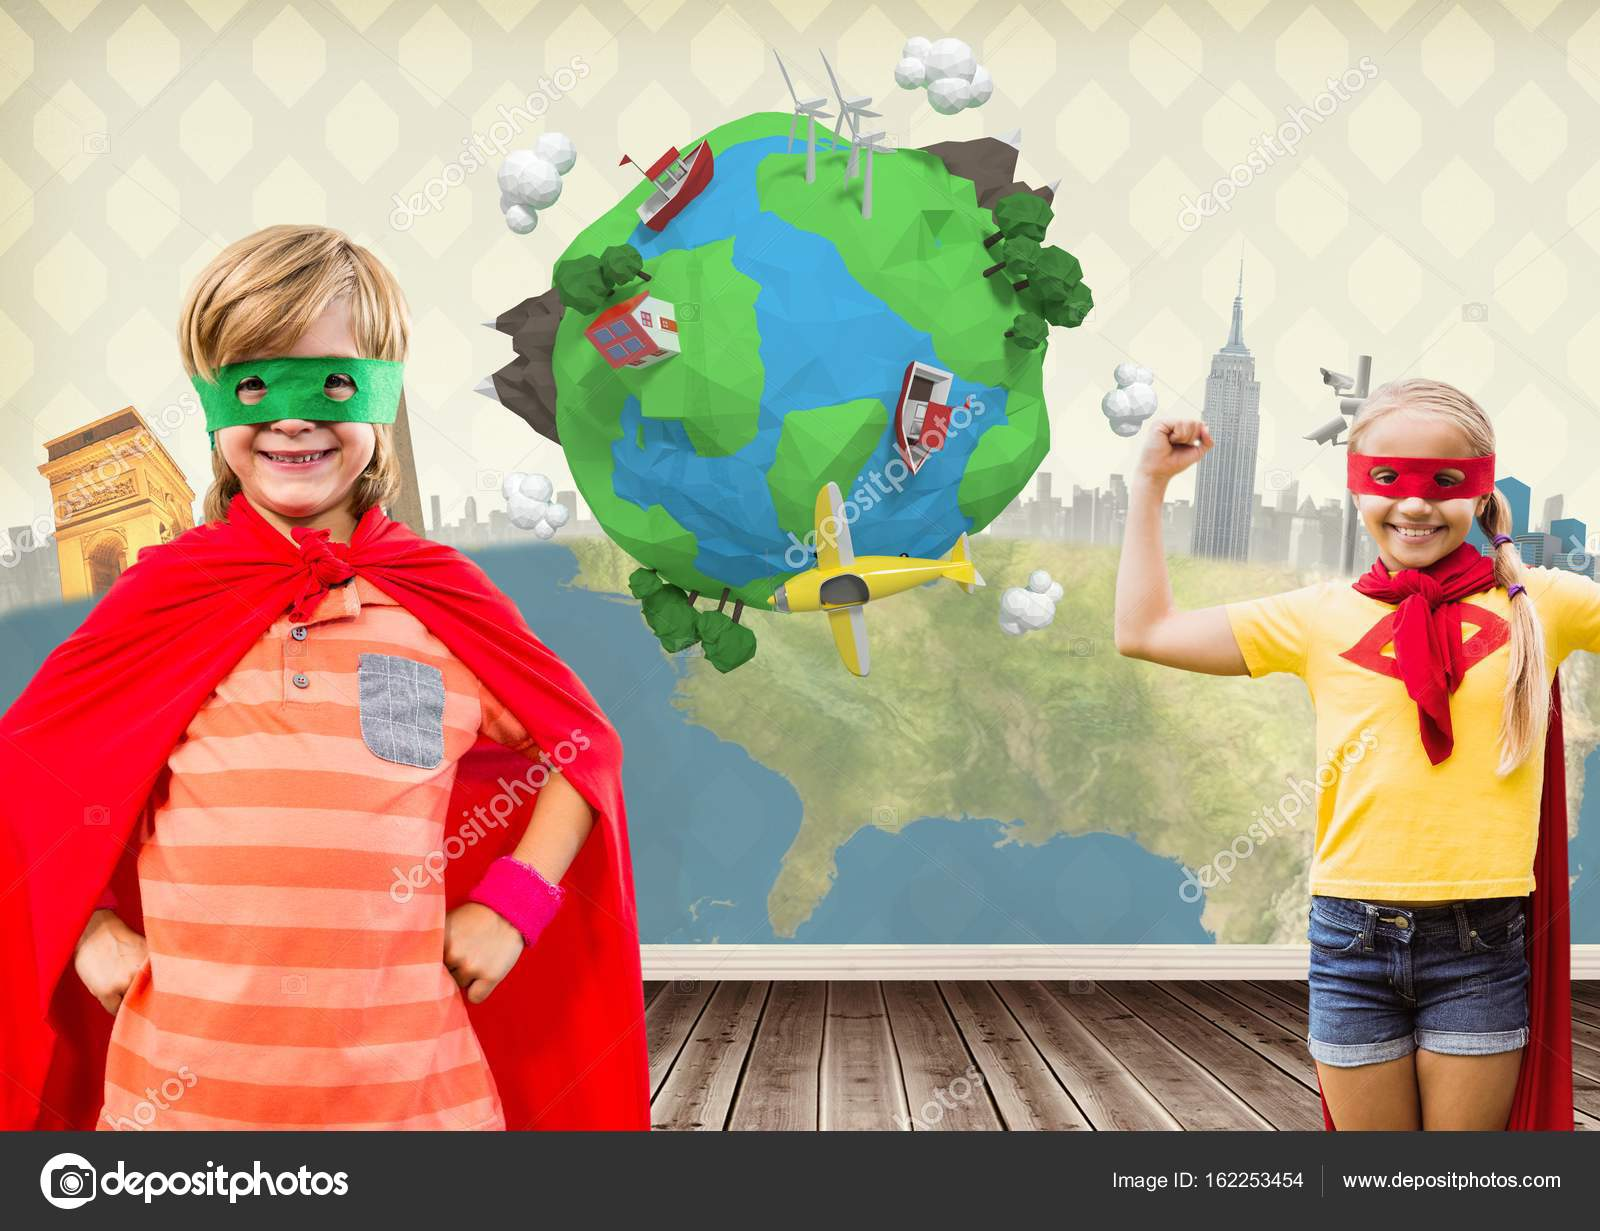 Digital Composite Of Superhero Kids In Room With Planet Earth World U2014 Photo  By ...